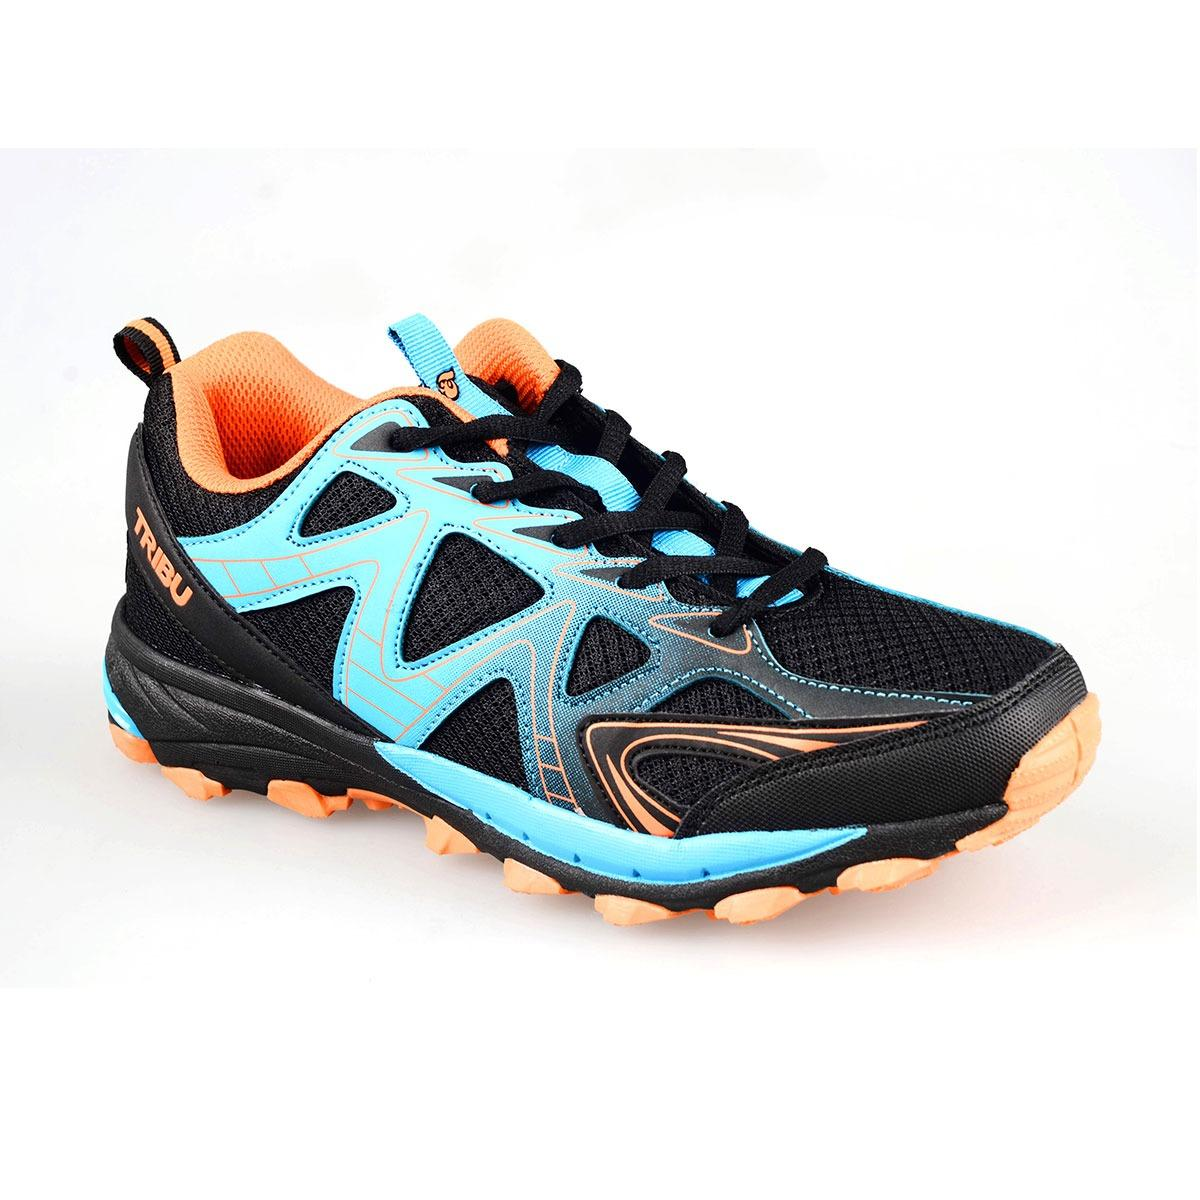 Hiking Shoes for Men for sale - Hikinh Sports Shoes online brands ...